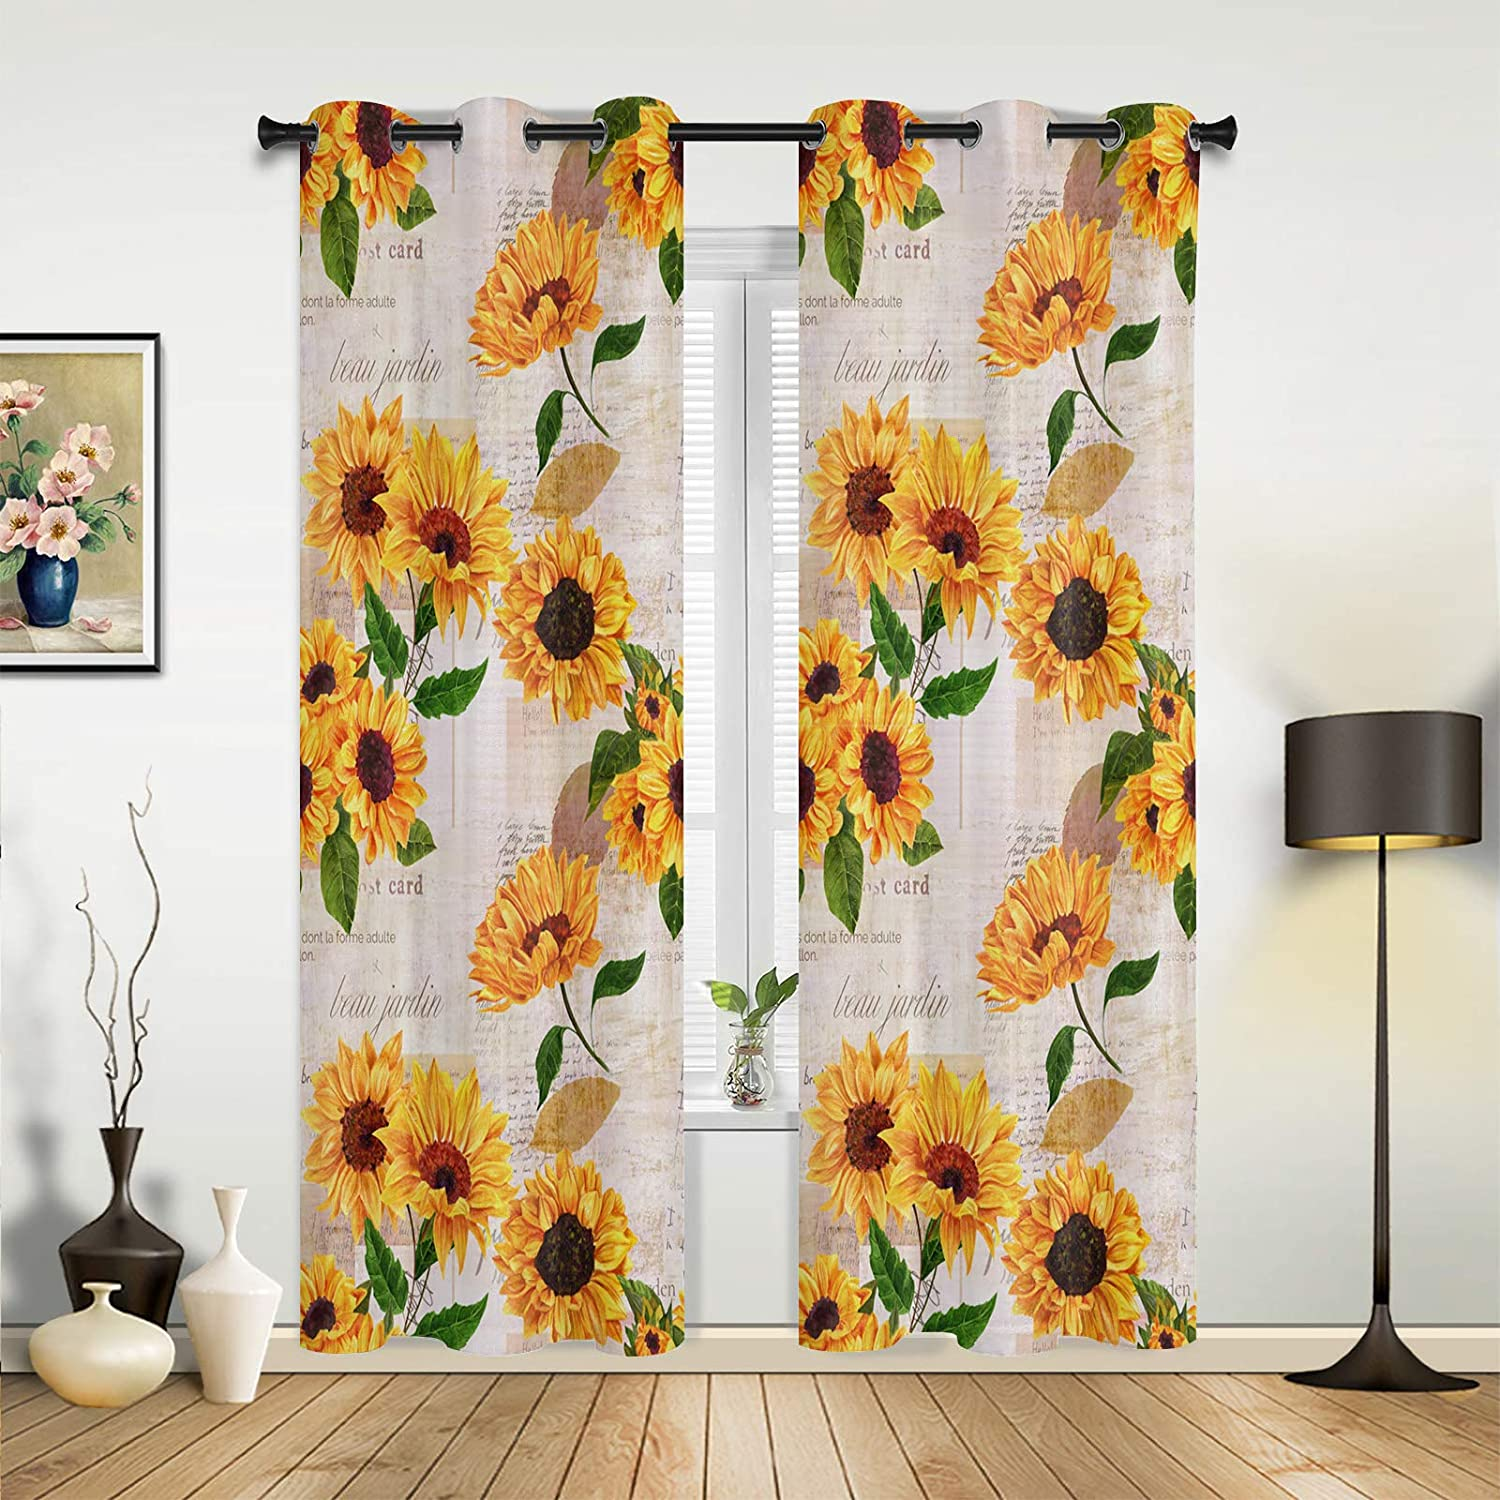 NEW Beauty Decor Window Sheer Curtains Bedroom Room Vinta for Super Special SALE held Living